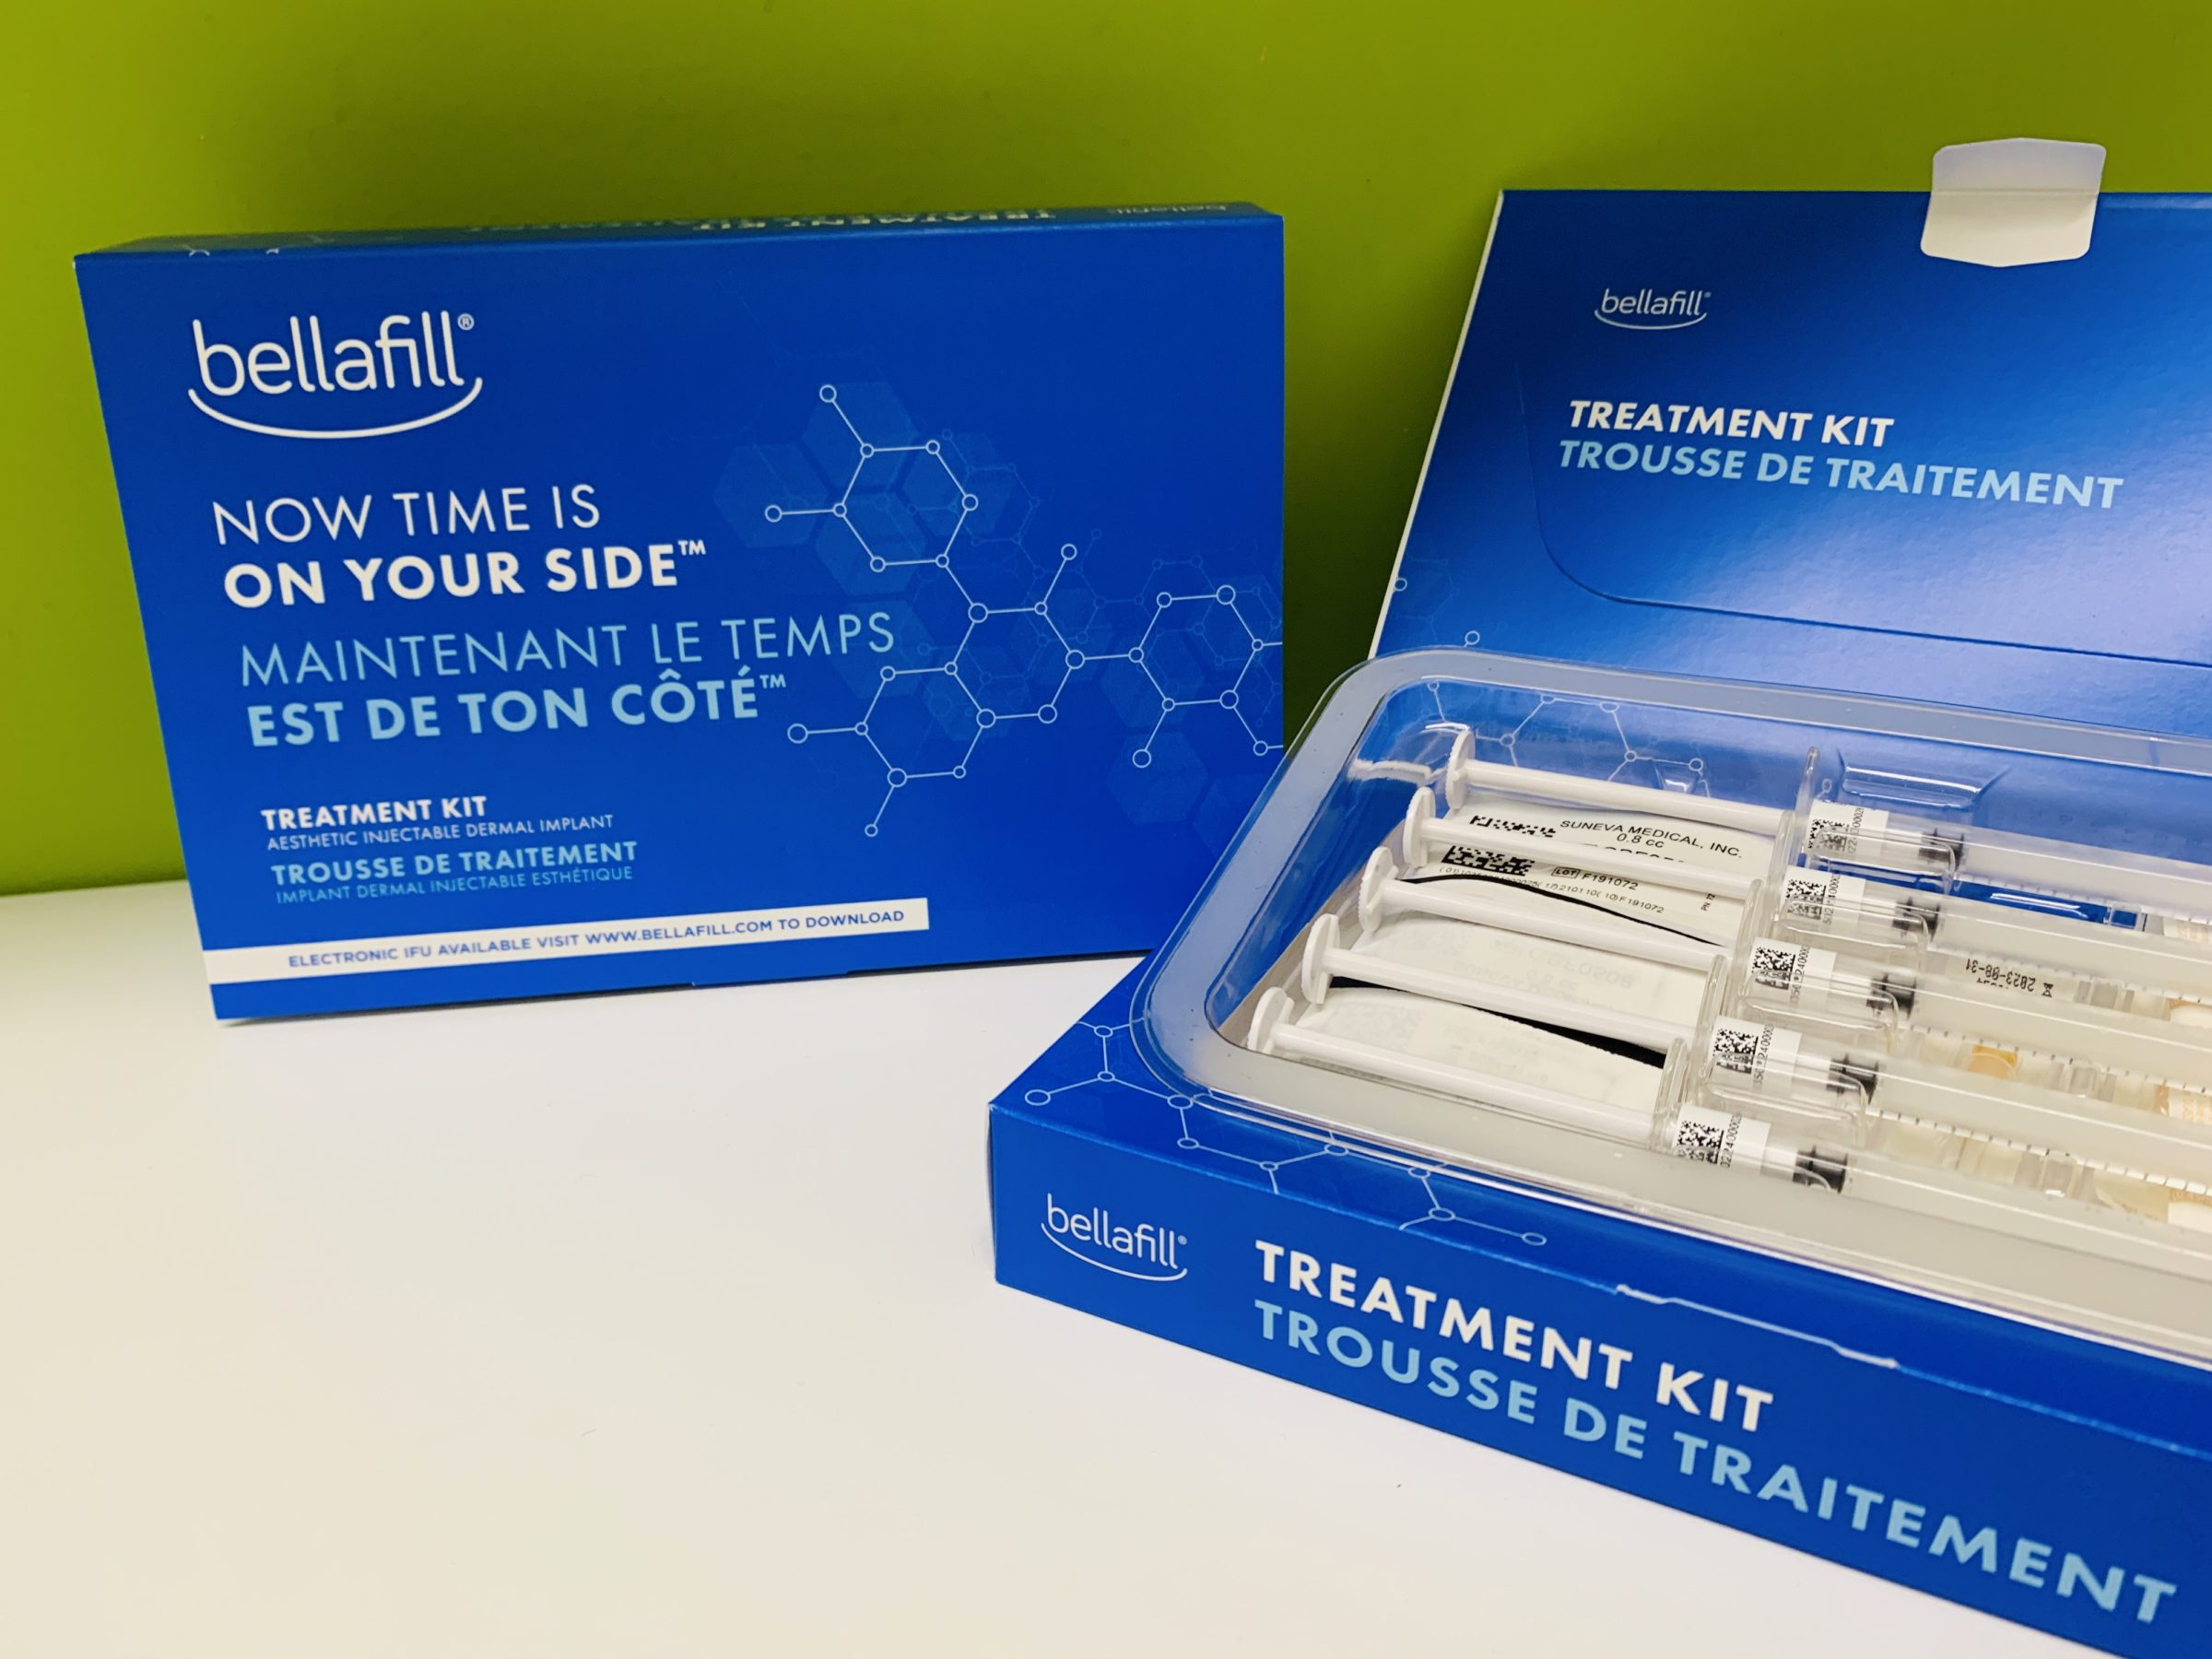 Bellafill Treatment Kits are available at Well Medical Arts in Seattle.